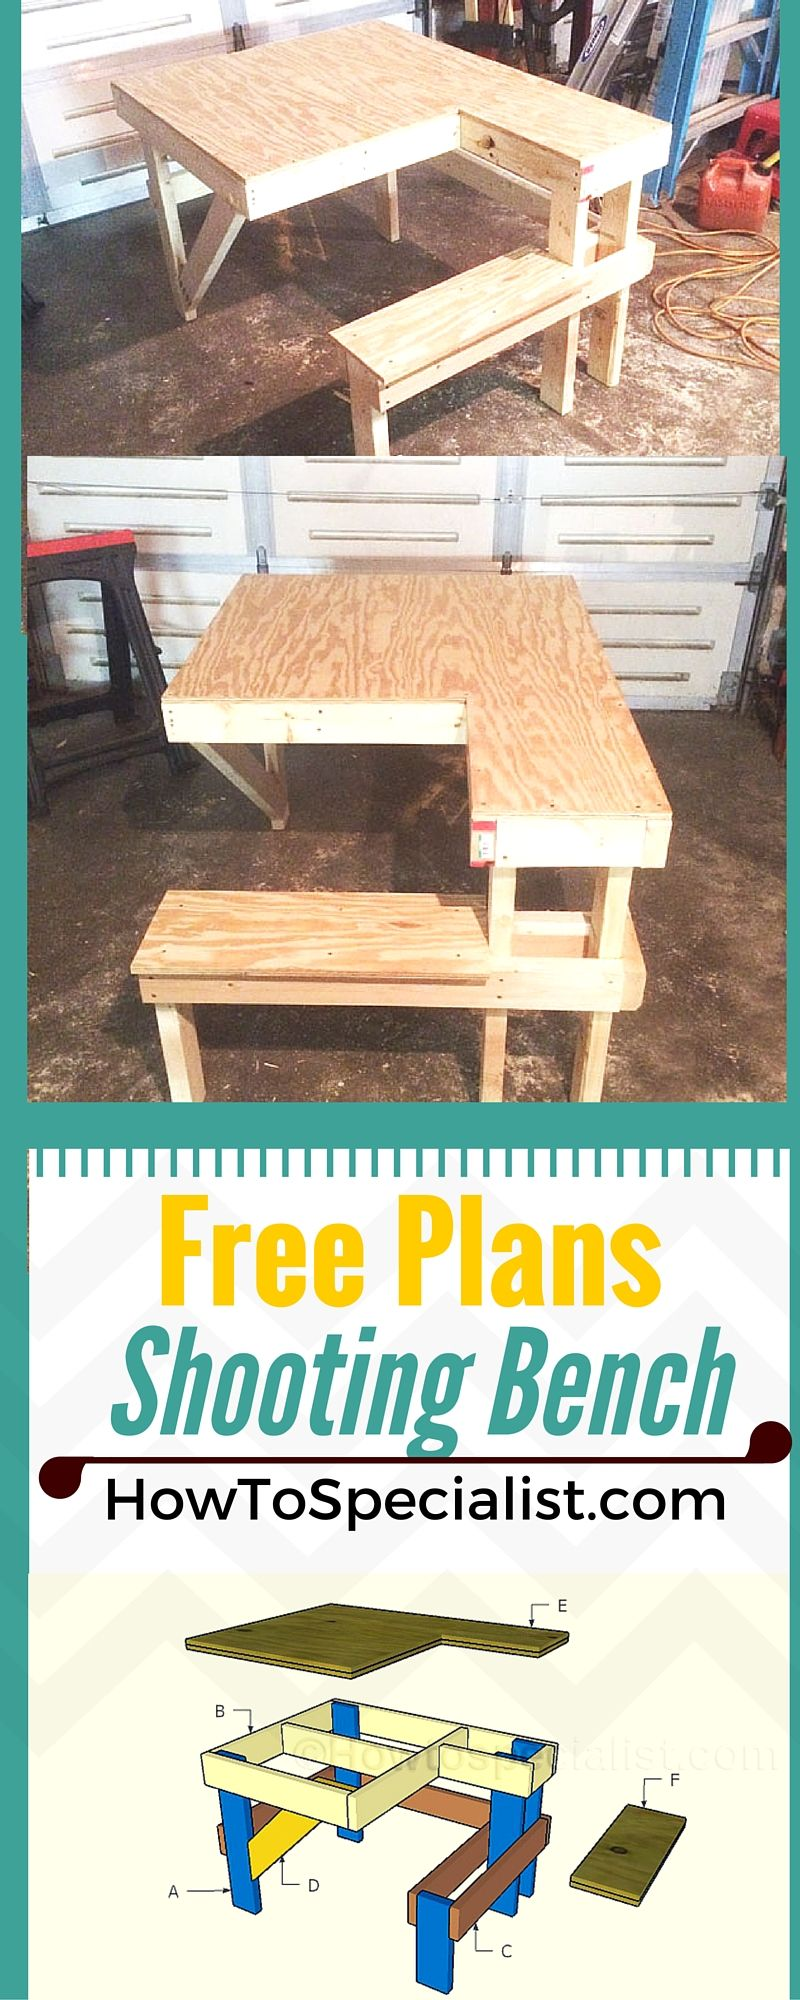 Free Shooting Bench Plans Howtospecialist How To Build Step By Step Diy Plans Shooting Bench Shooting Bench Plans Woodworking Plans